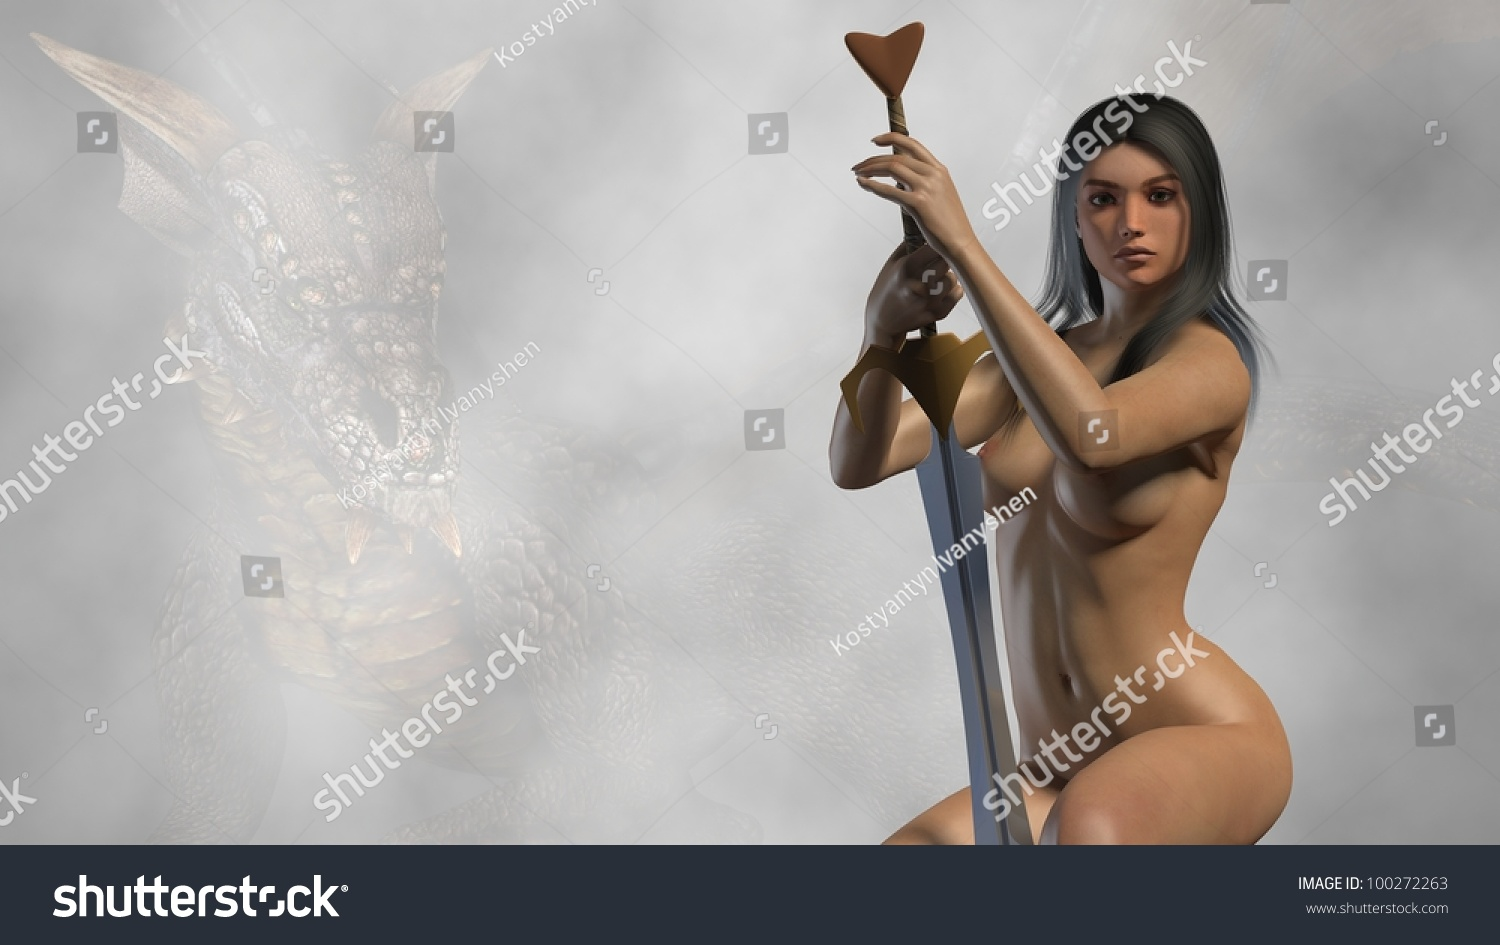 Nude Woman Warriors 34